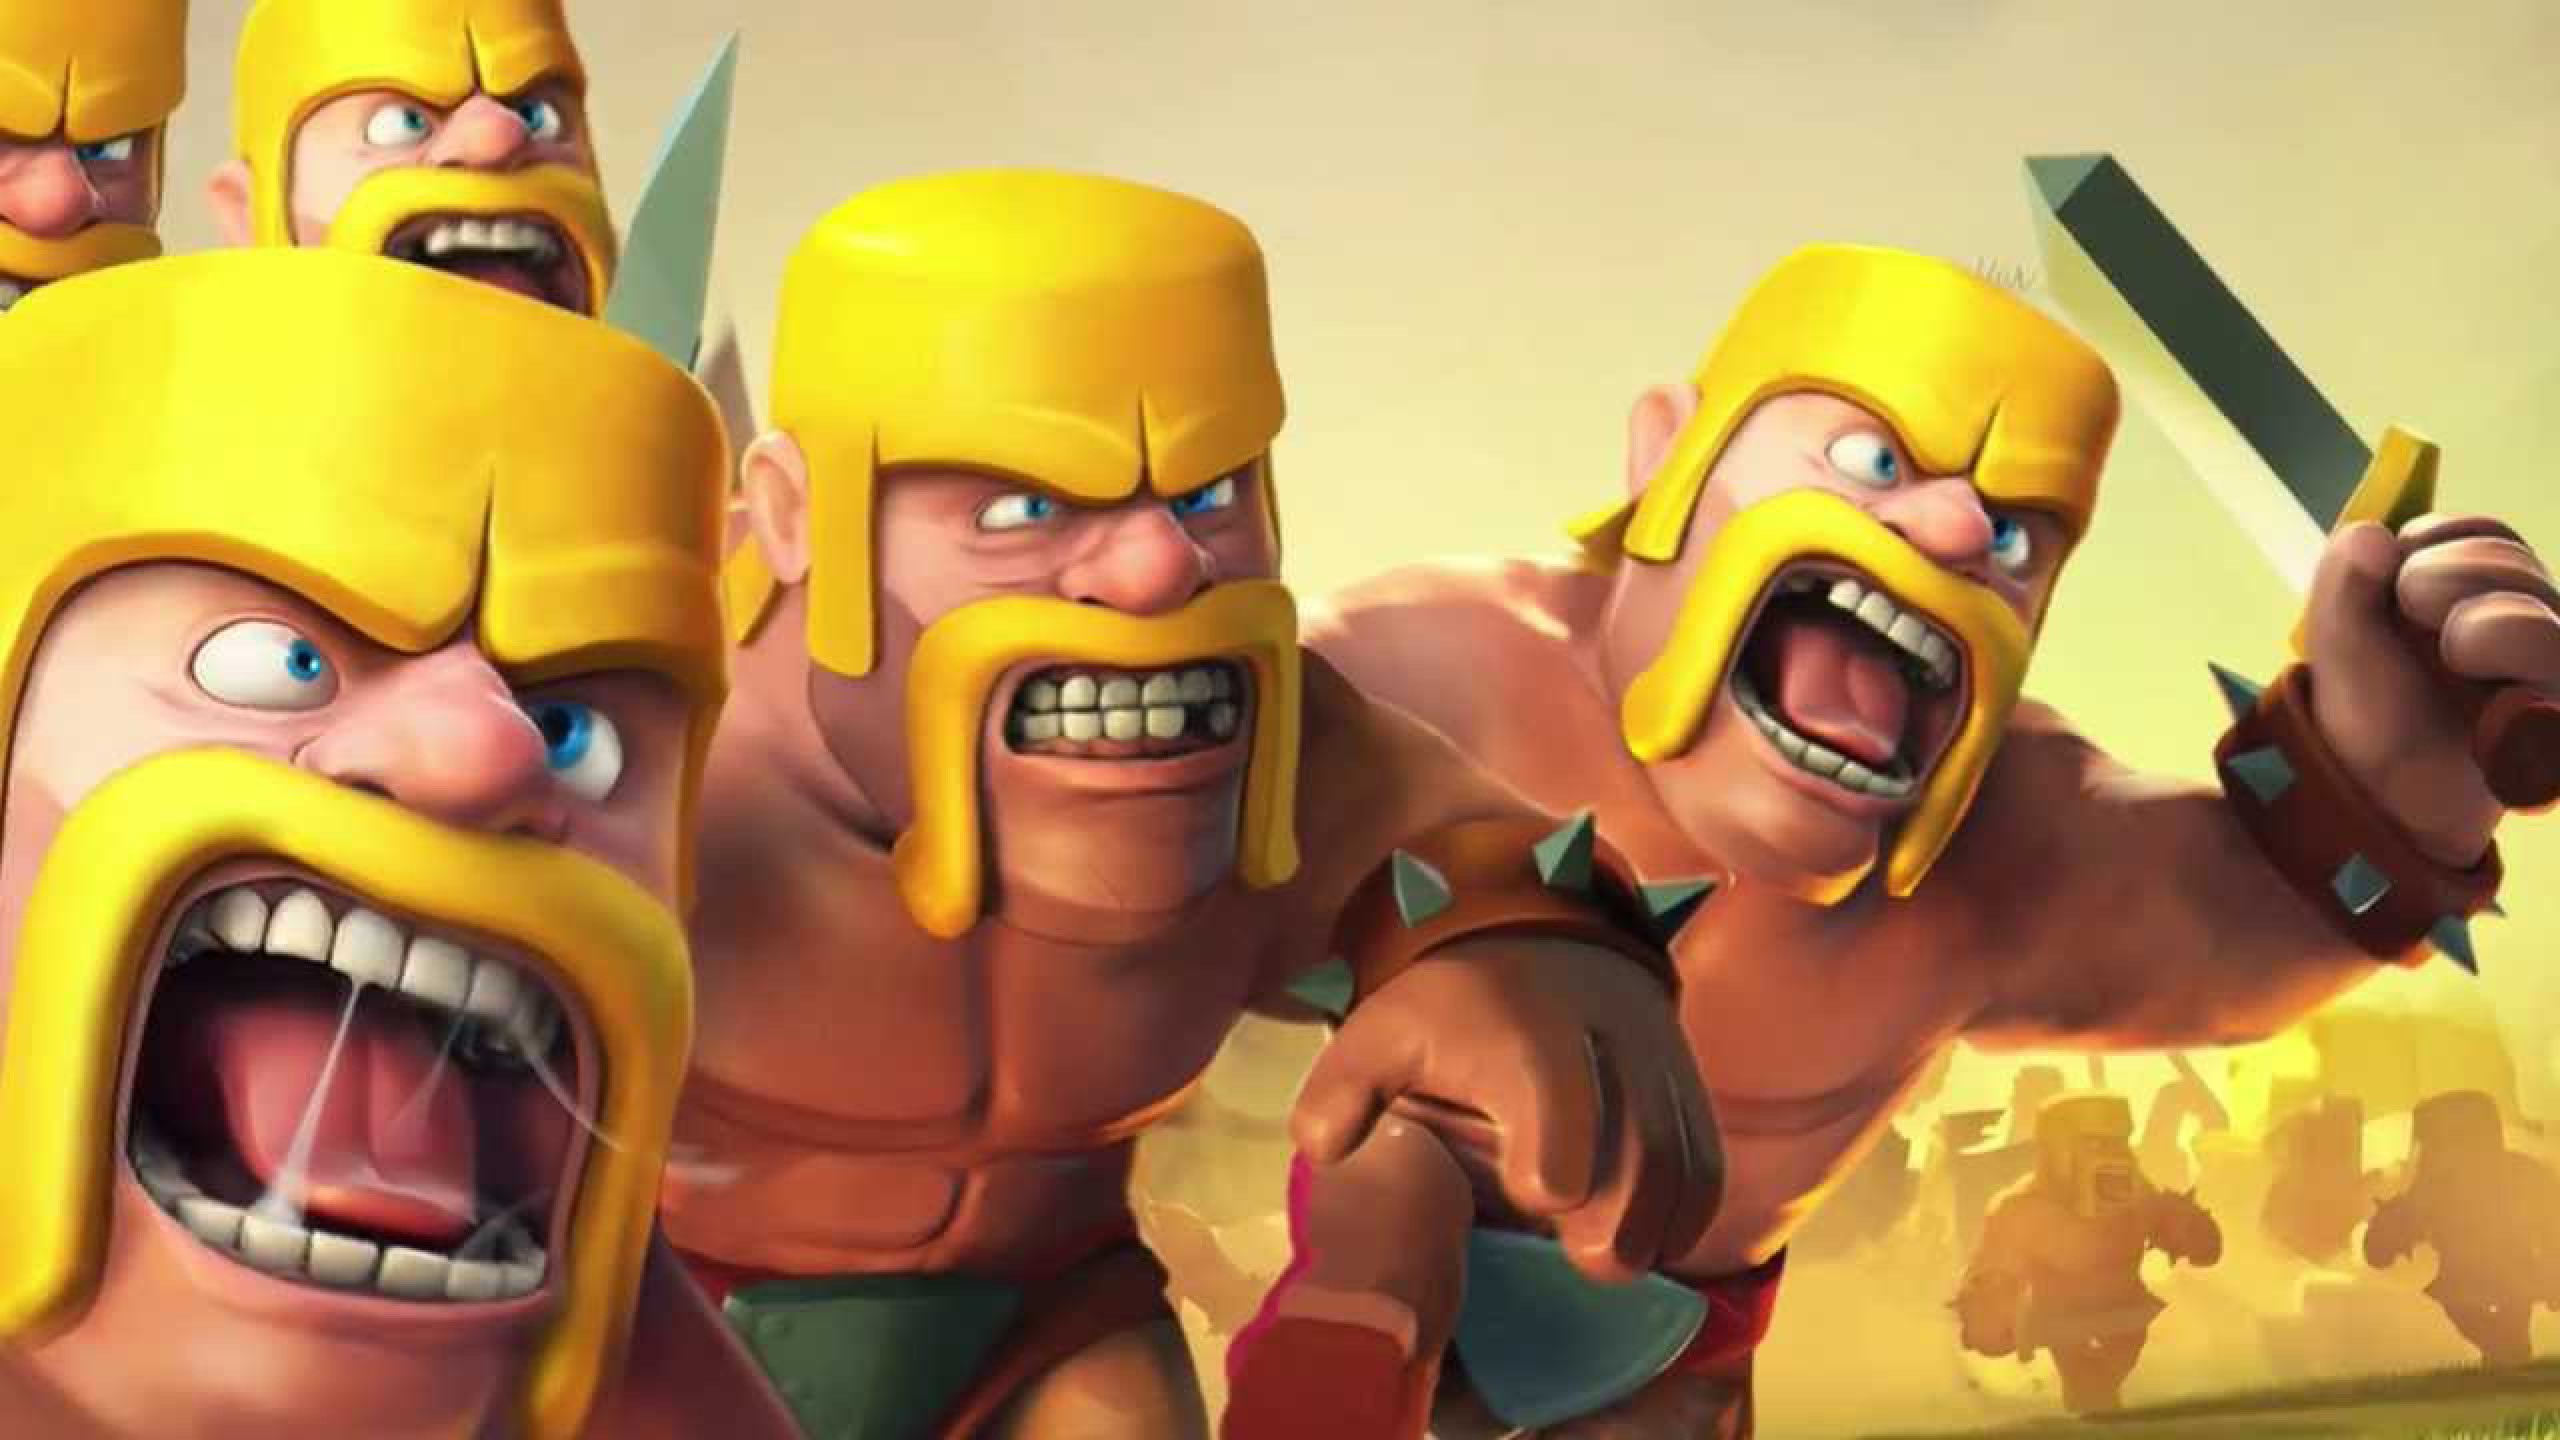 Clash of Clans Wallpaper Gaming Tools 2560x1440